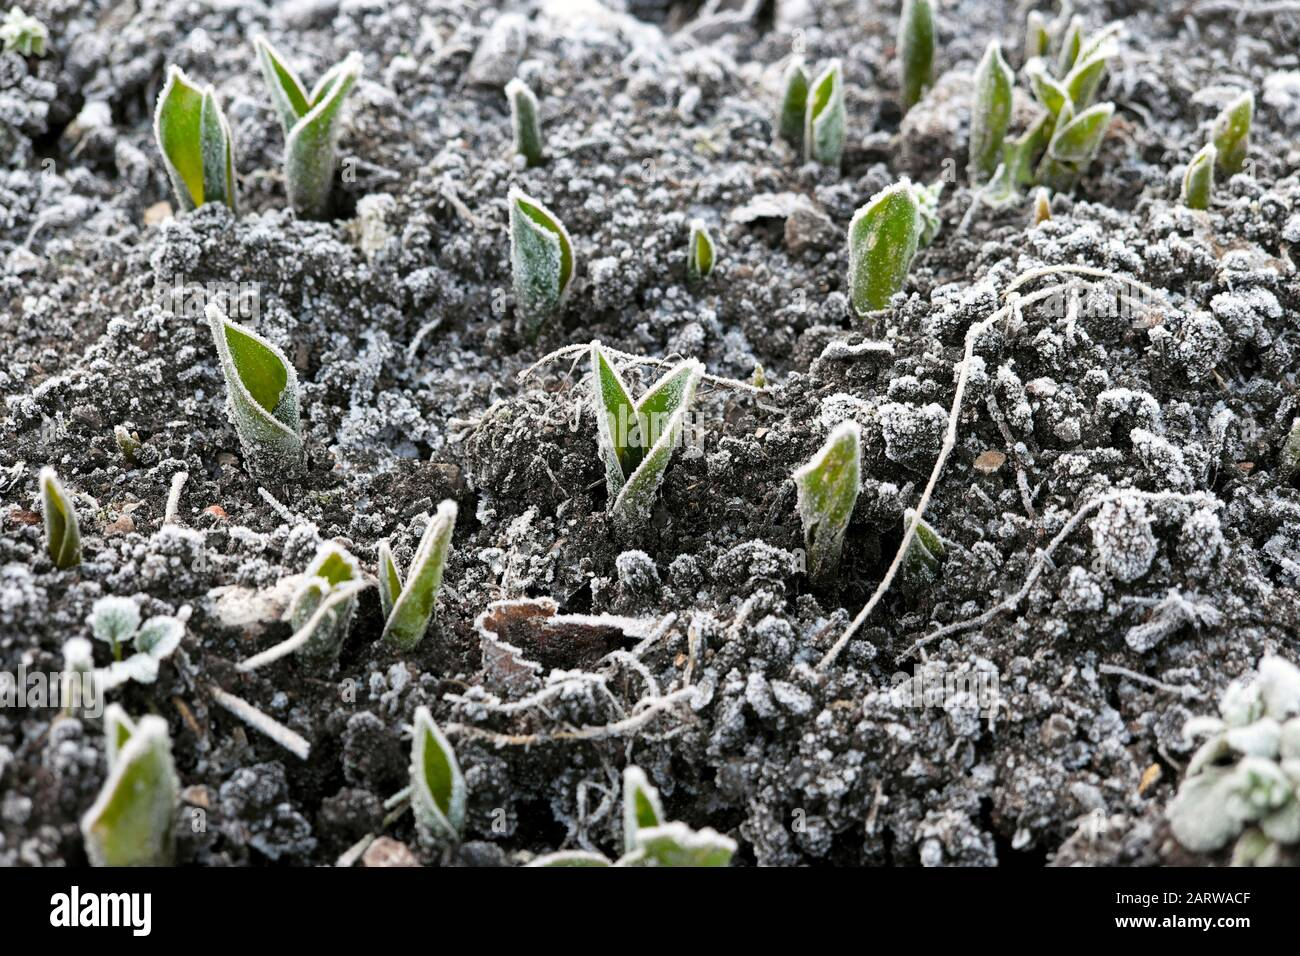 Frost on tulips tulip leaves plants shoots emerging from ground outside on  frosty cold winter January day in Gloucestershire UK   2020 KATHY DEWITT Stock Photo